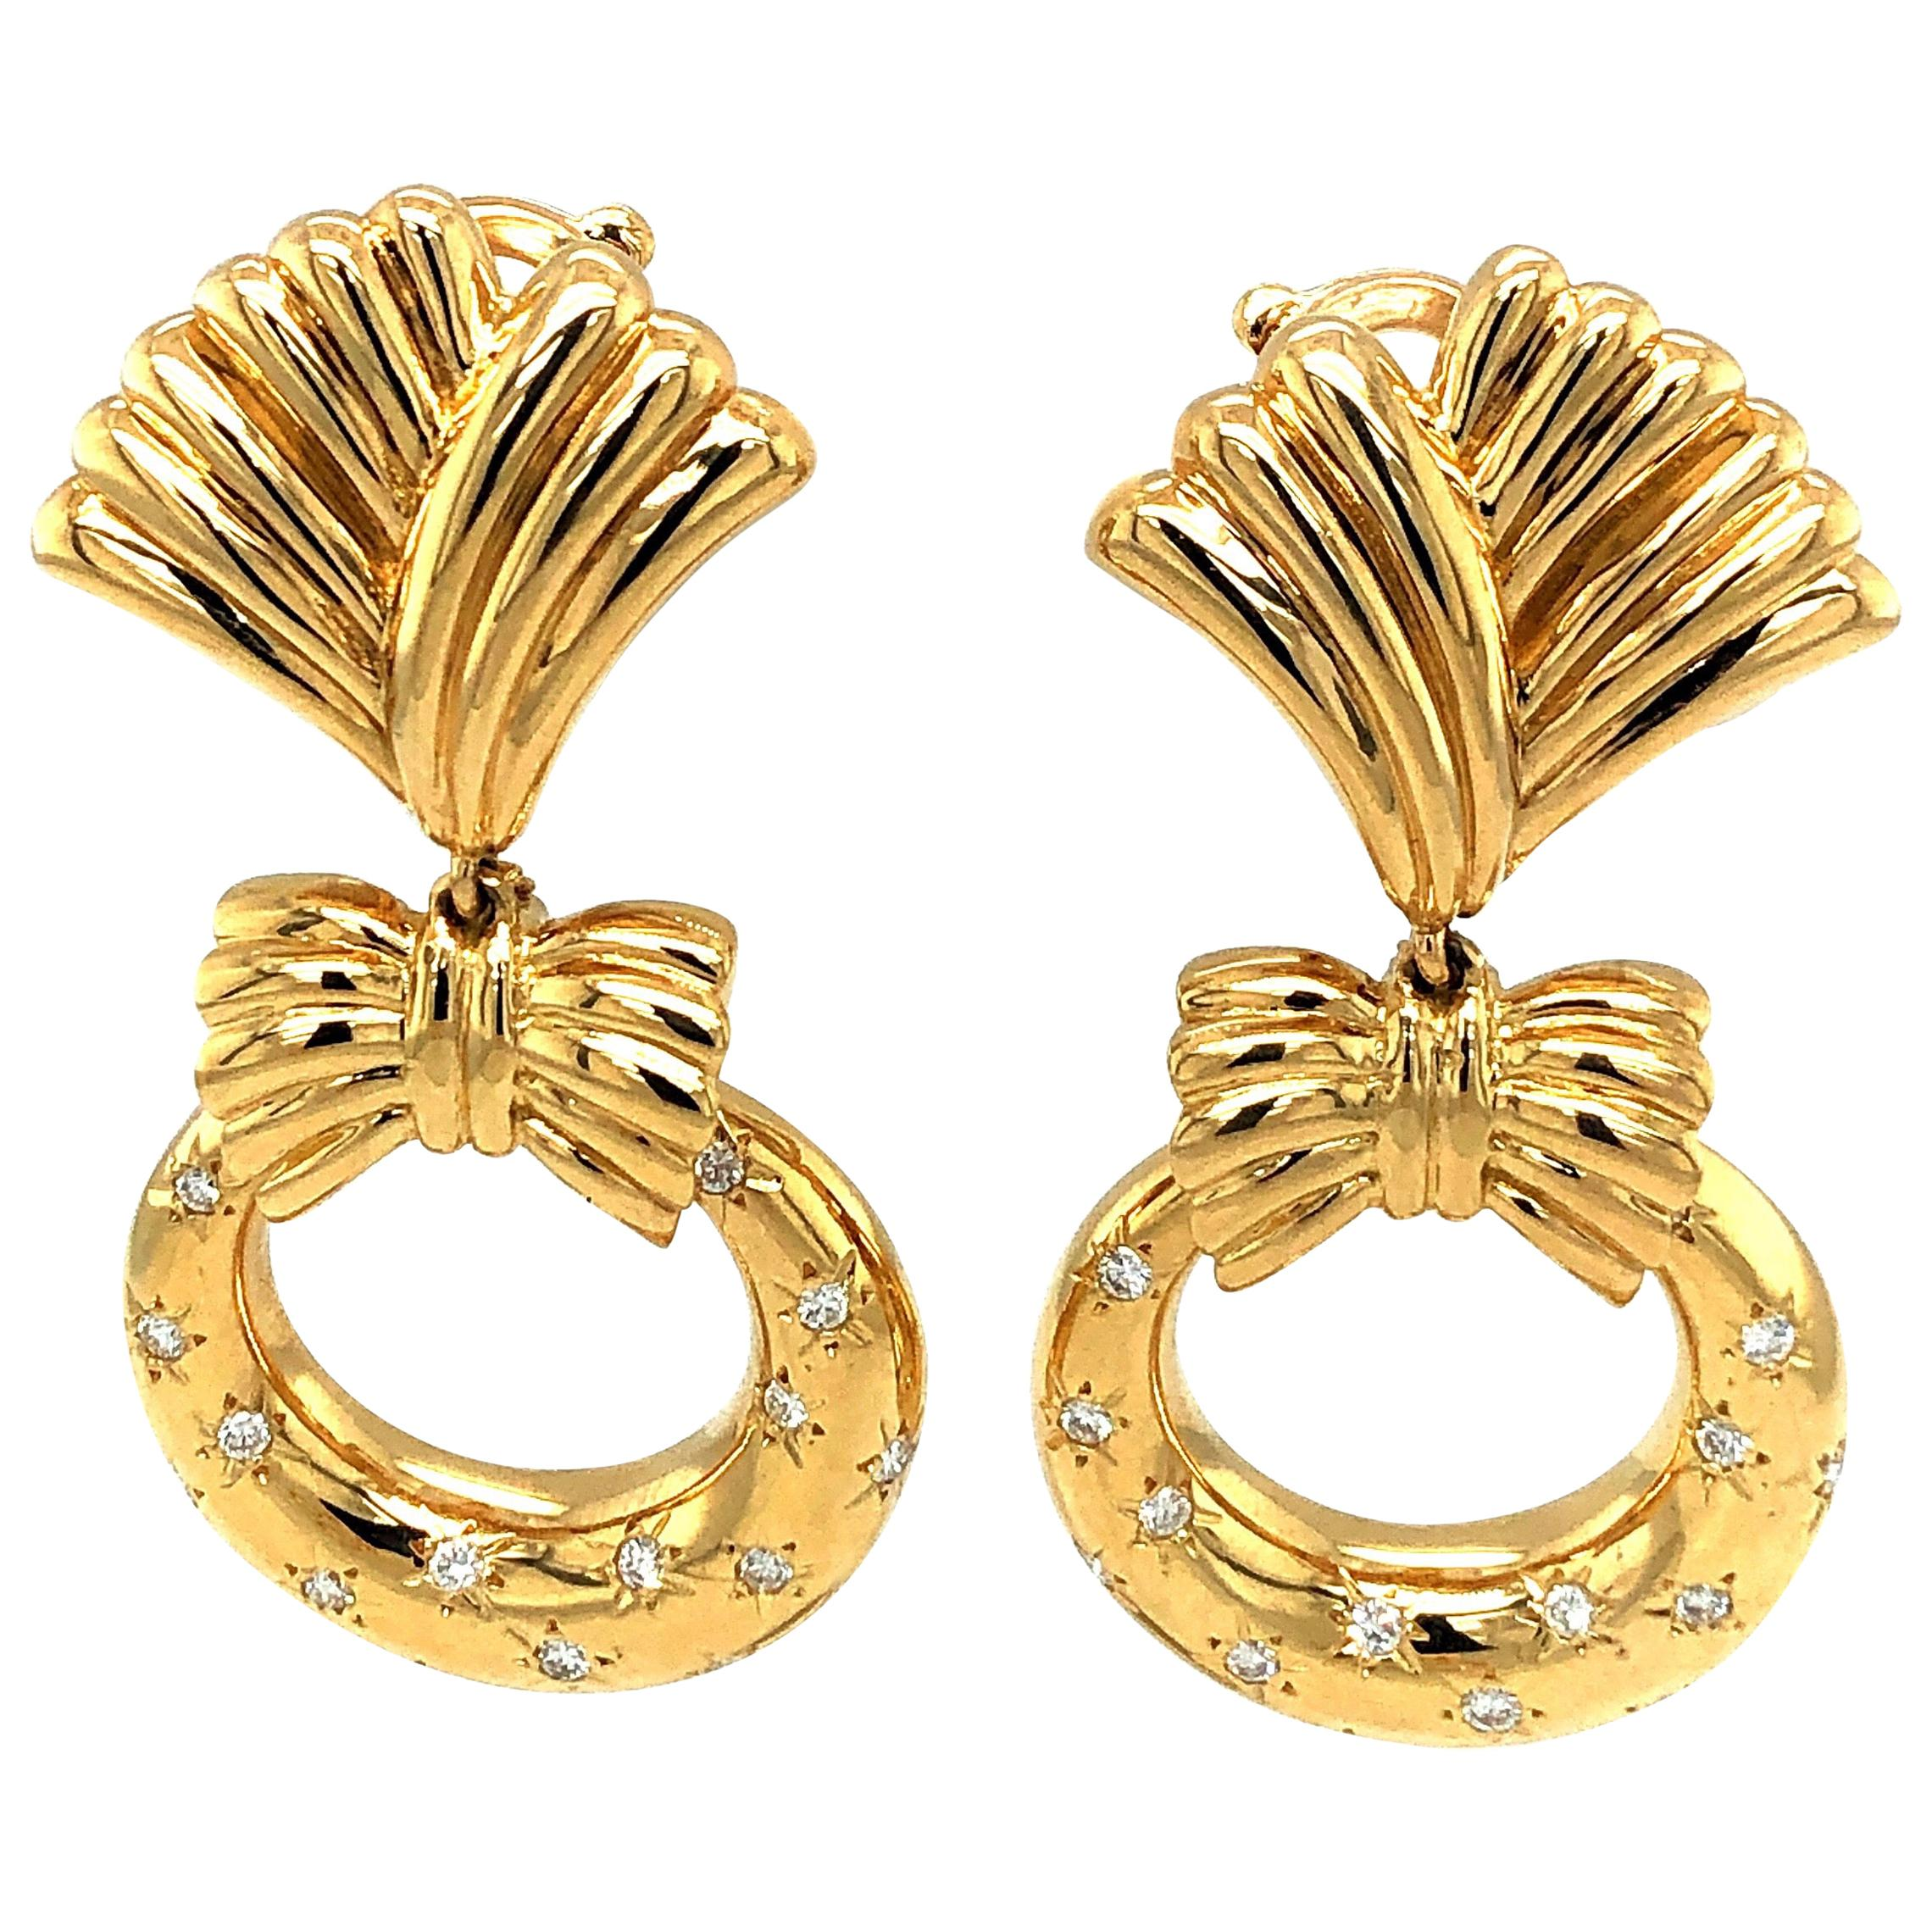 Van Cleef & Arpels Clip-On Yellow Gold Vintage Earrings Diamonds and Charms